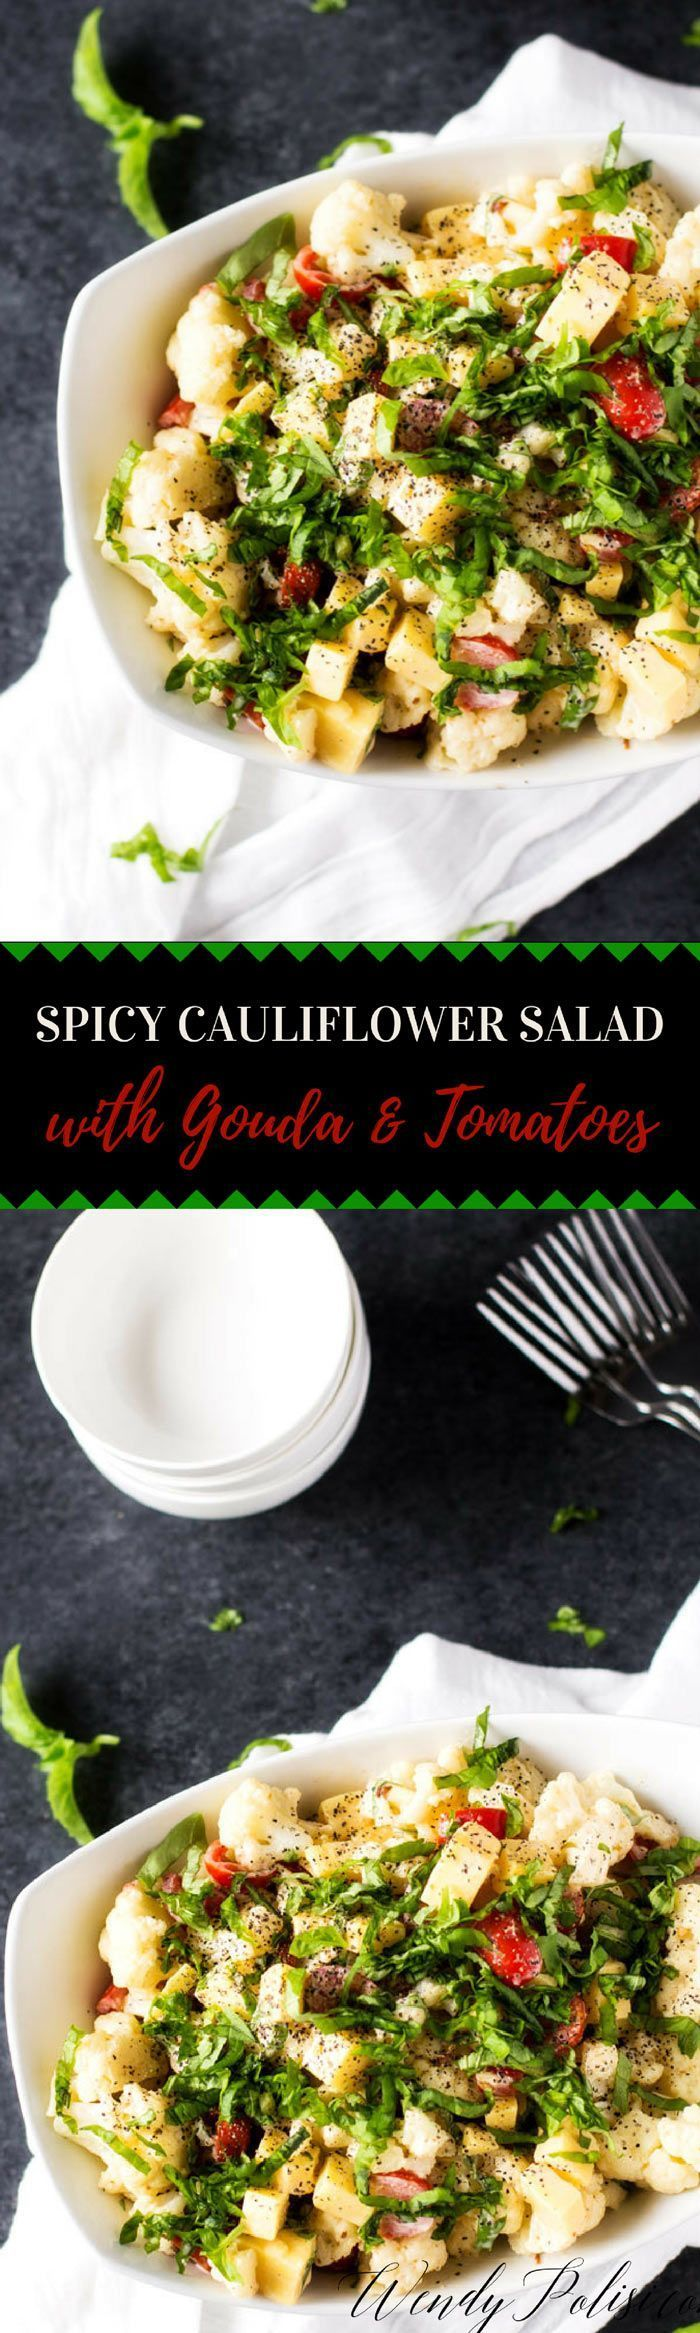 This Spicy Cauliflower Salad with Smoked Gouda, Tomatoes & Basil is a great side for your next grill out! A low-carb alternative to pasta and potato salad. Keto Friendly. via @wendypolisi